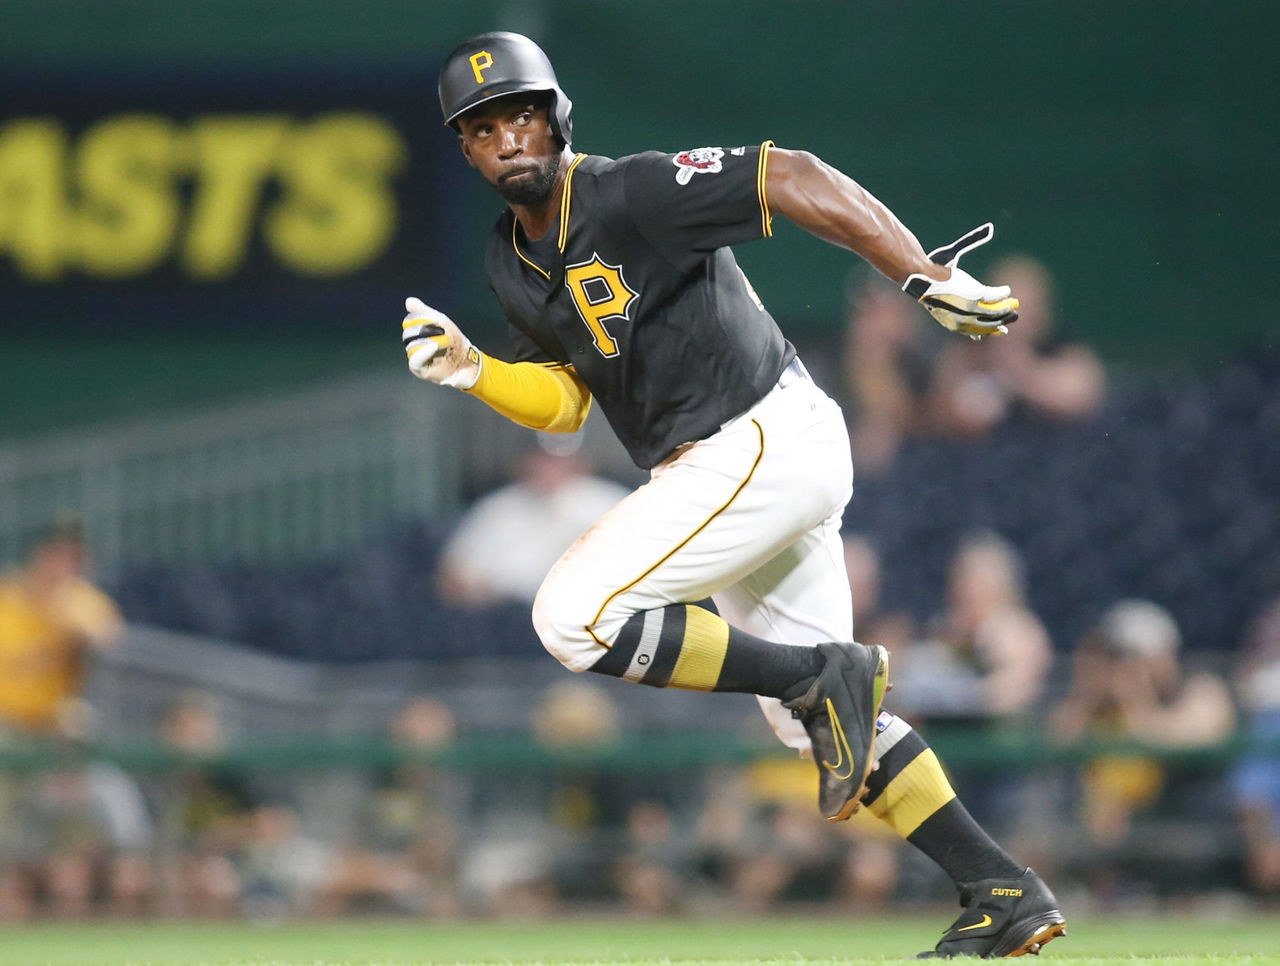 Cropped 2017 07 18t020138z 1499322208 nocid rtrmadp 3 mlb milwaukee brewers at pittsburgh pirates